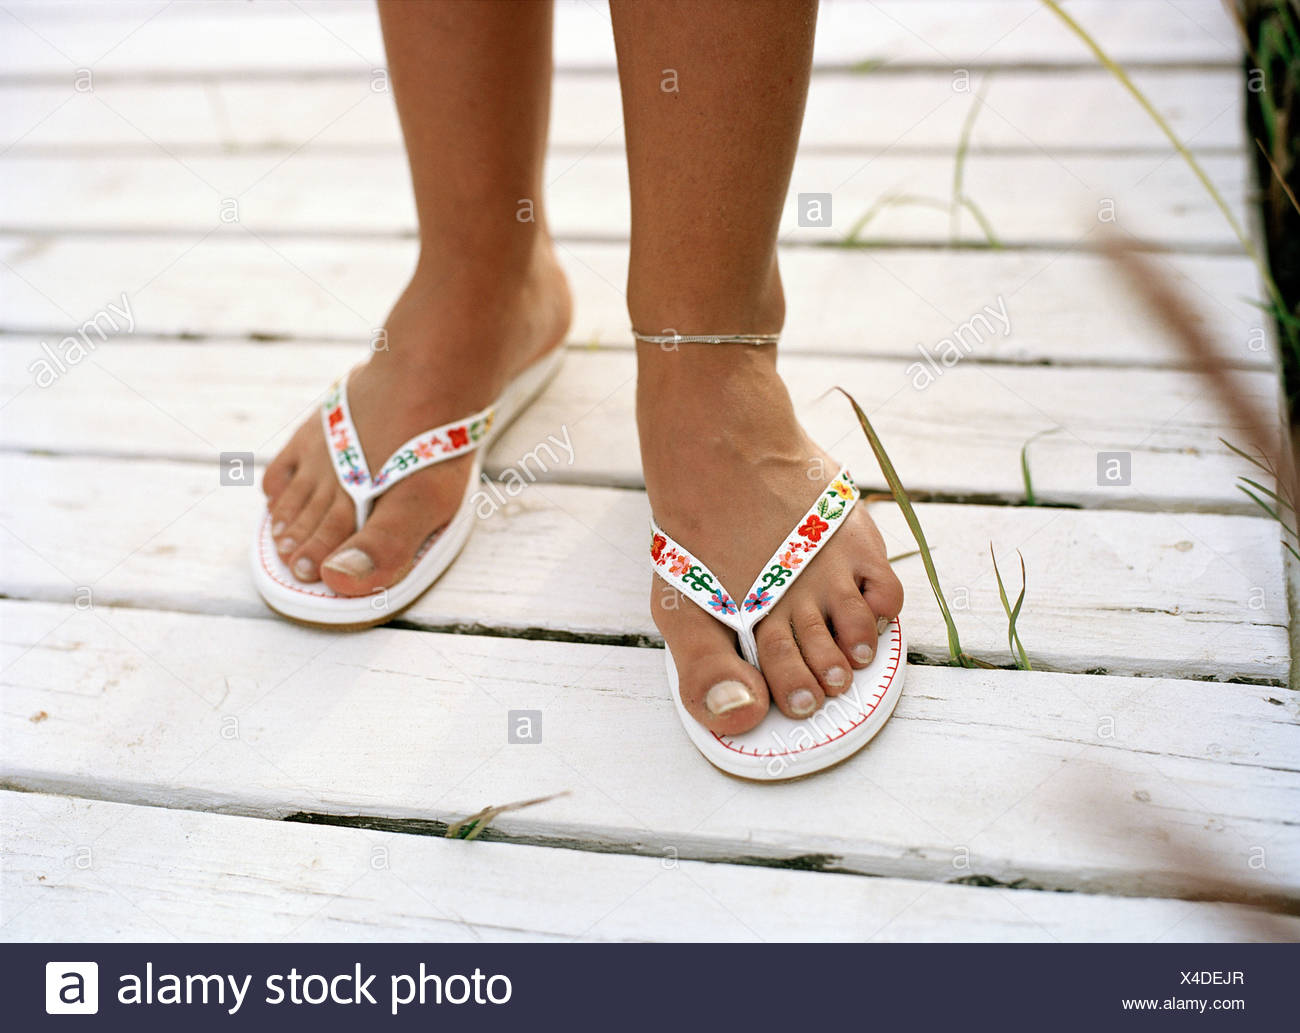 861fdbfc83c Feet In Sandals Stock Photos   Feet In Sandals Stock Images - Alamy